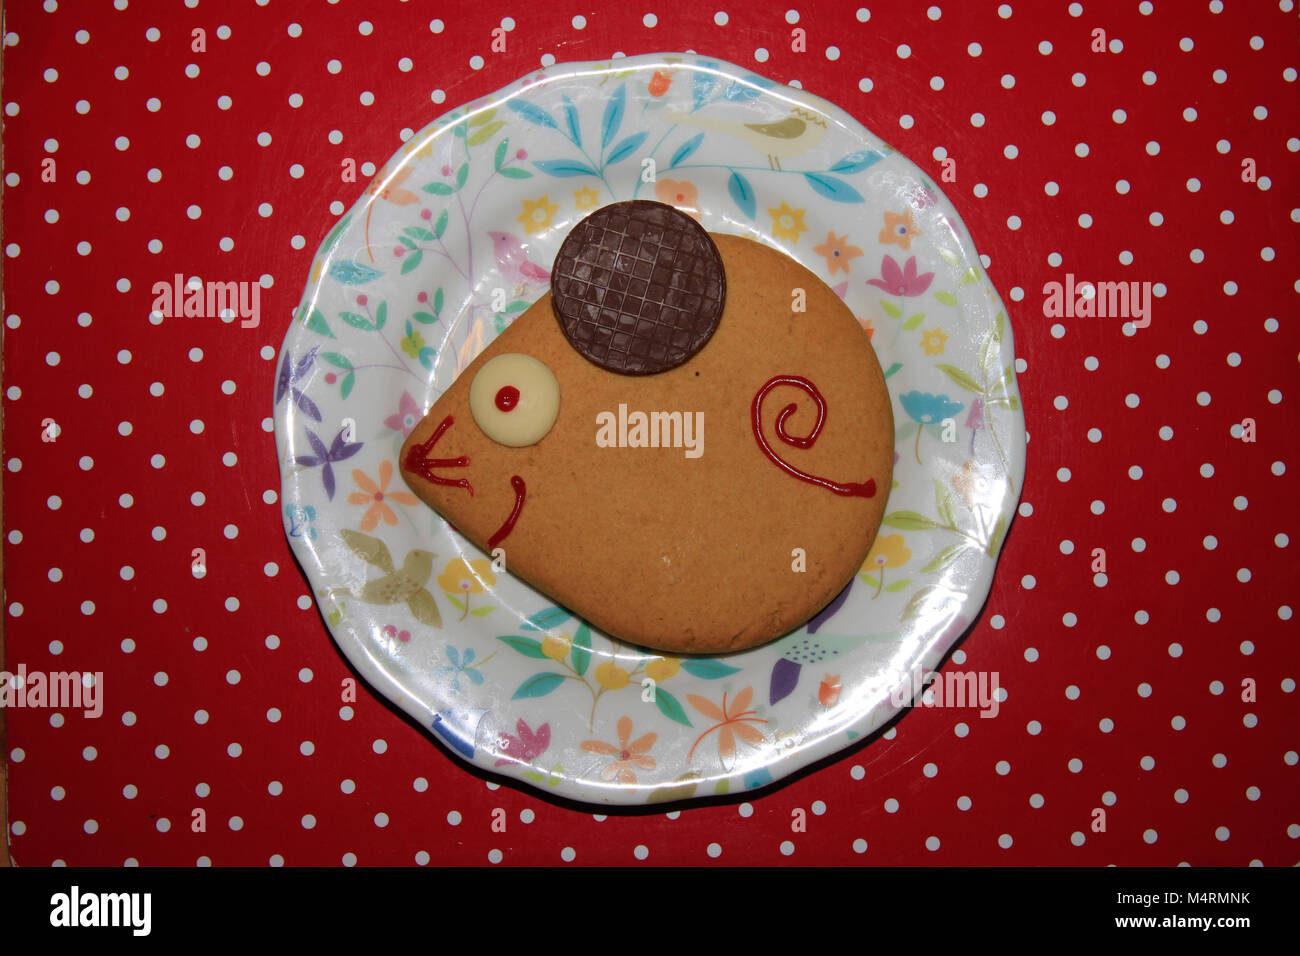 Decorated Festive Shortbread Biscuits On Tea Plates On Red Spotty